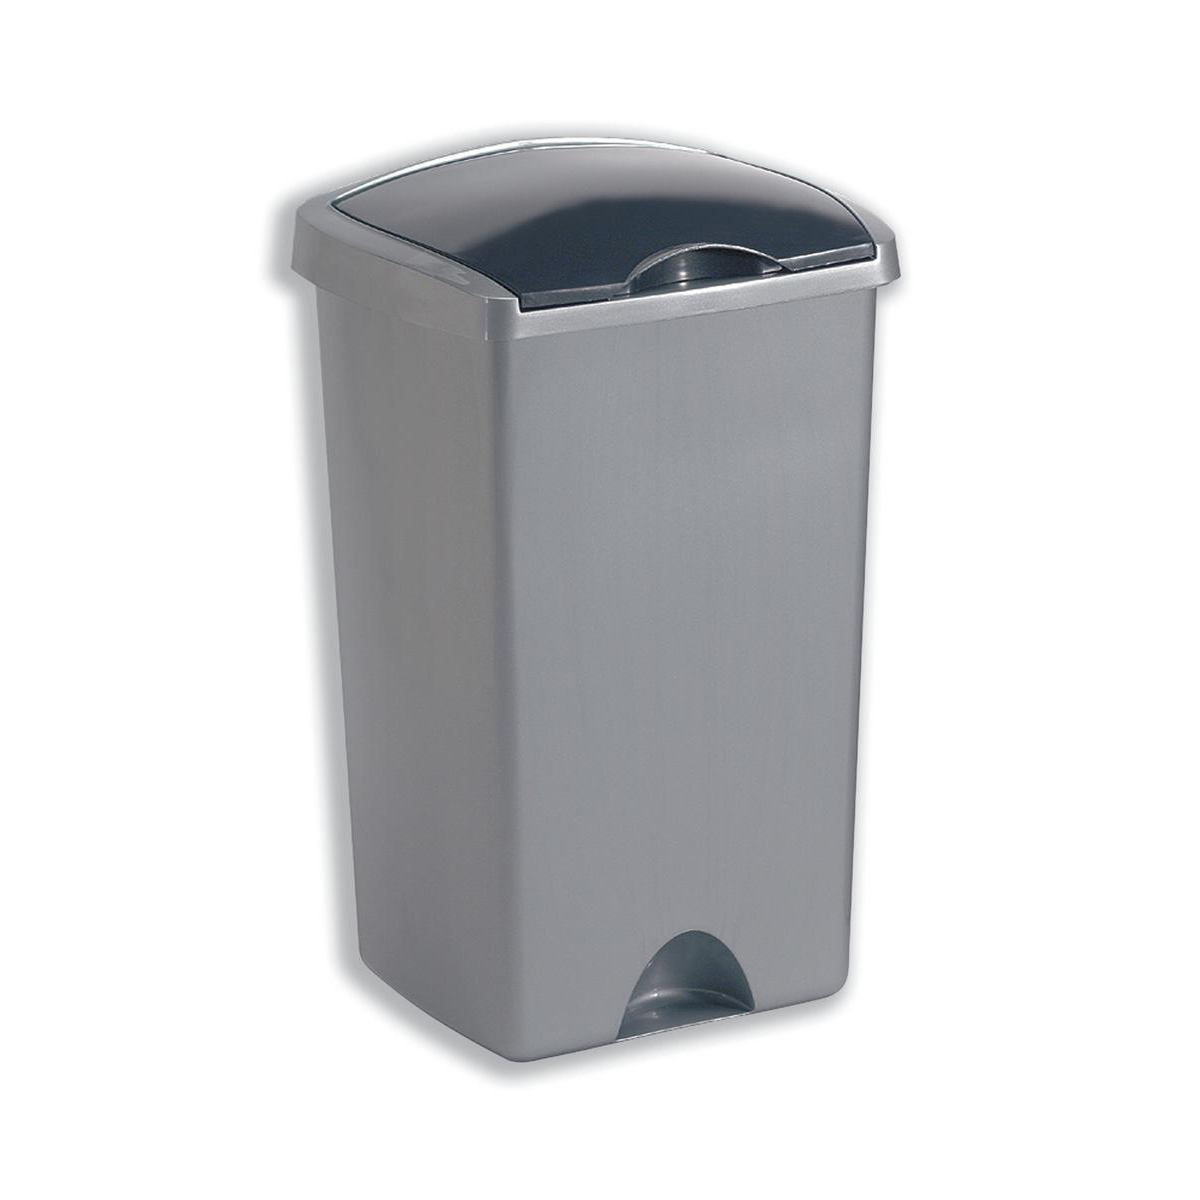 Non metallic bins Addis Lift Up Lid Bin Plastic 50 Litres Metallic Silver Ref 015381